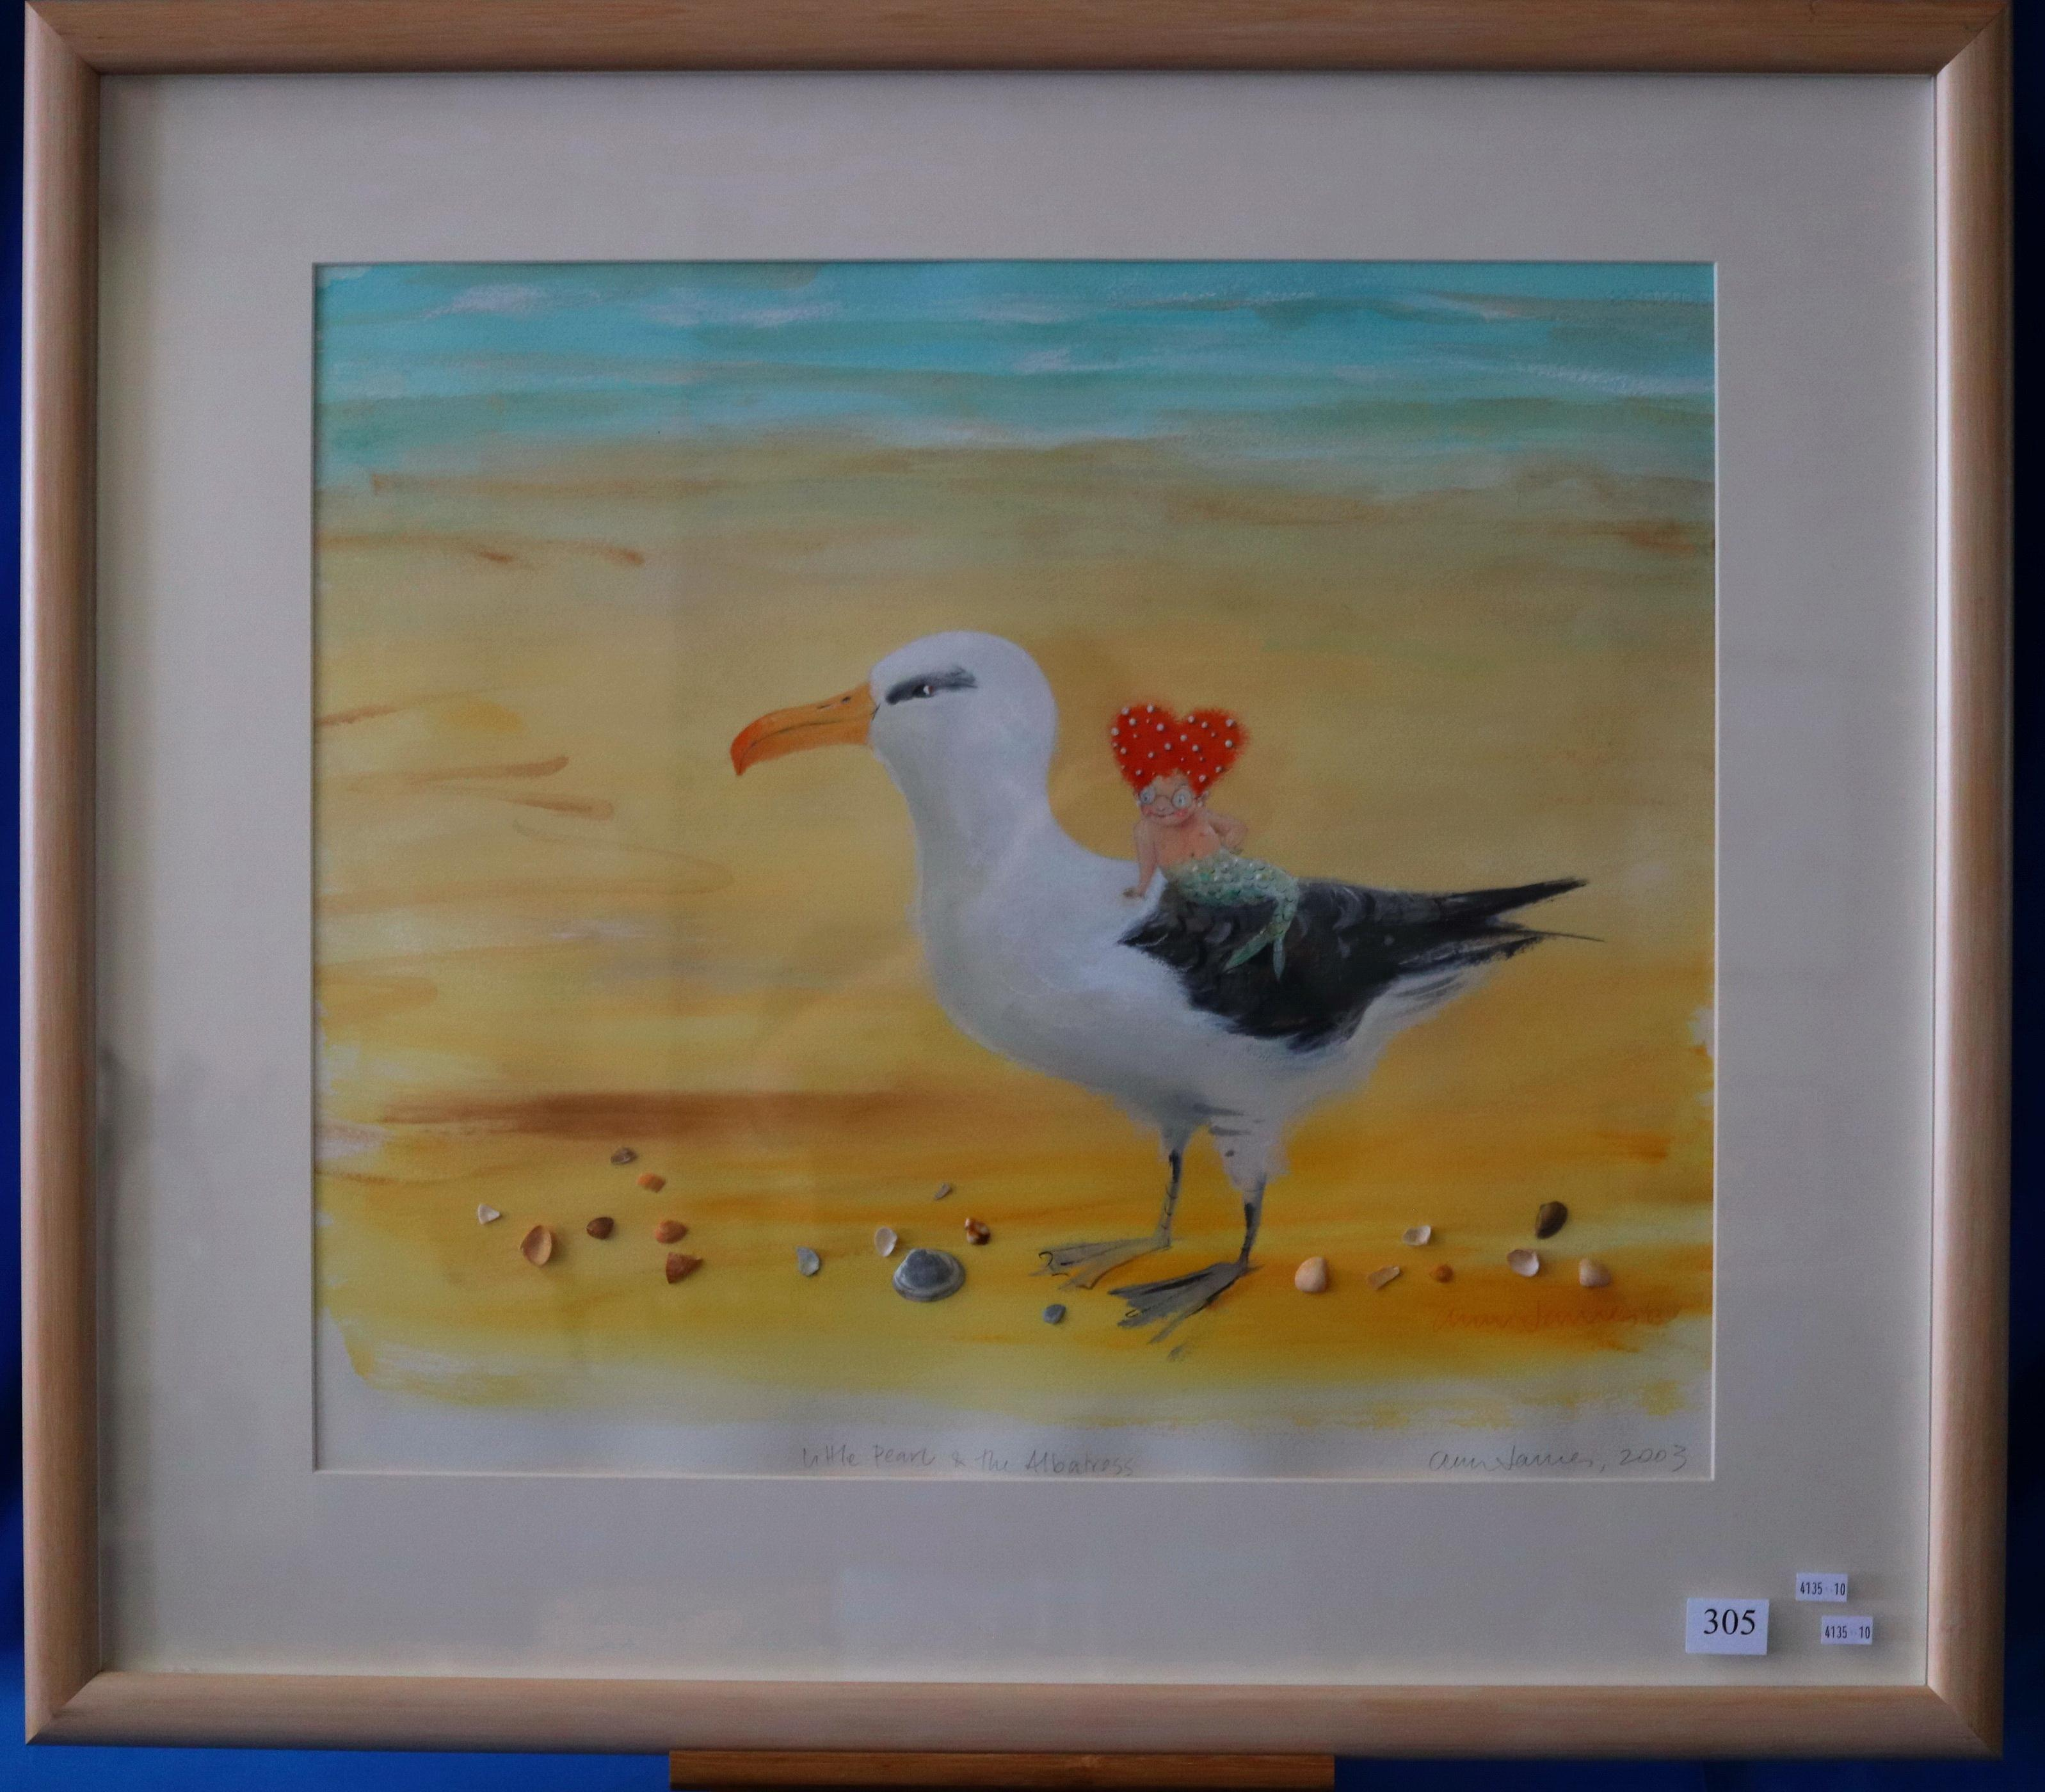 ANN JAMES LITTLE PEARL AND THE ALBATROSS 2003 PASTEL, WATERCOLOUR AND SHELLS ON PAPER 50.5 X 60